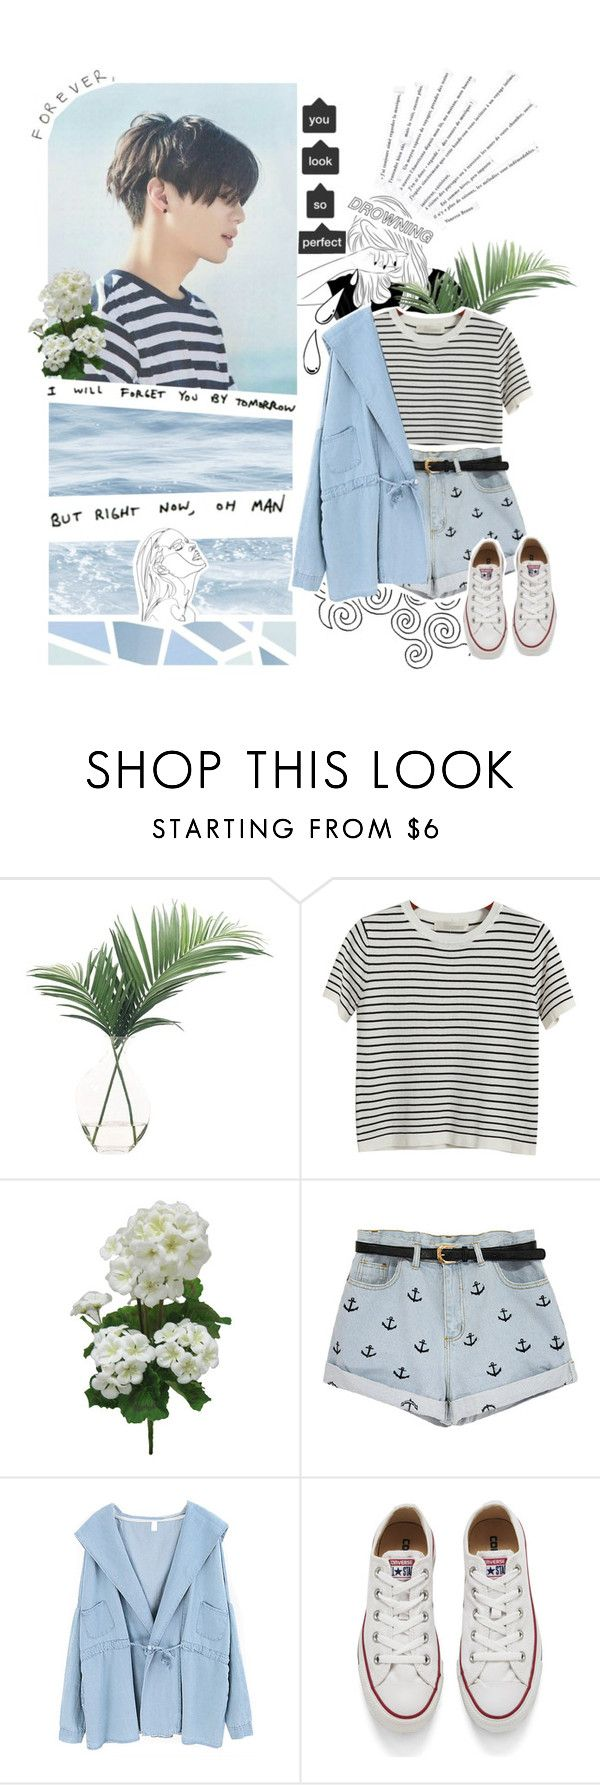 """""""My eyes were looking for you, so I found you"""" by blue-neighbourhxxd ❤ liked on Polyvore featuring NDI, Chicnova Fashion, Katie, Converse, Belle Fleur, Old Navy, kpop, shinee and taemin"""